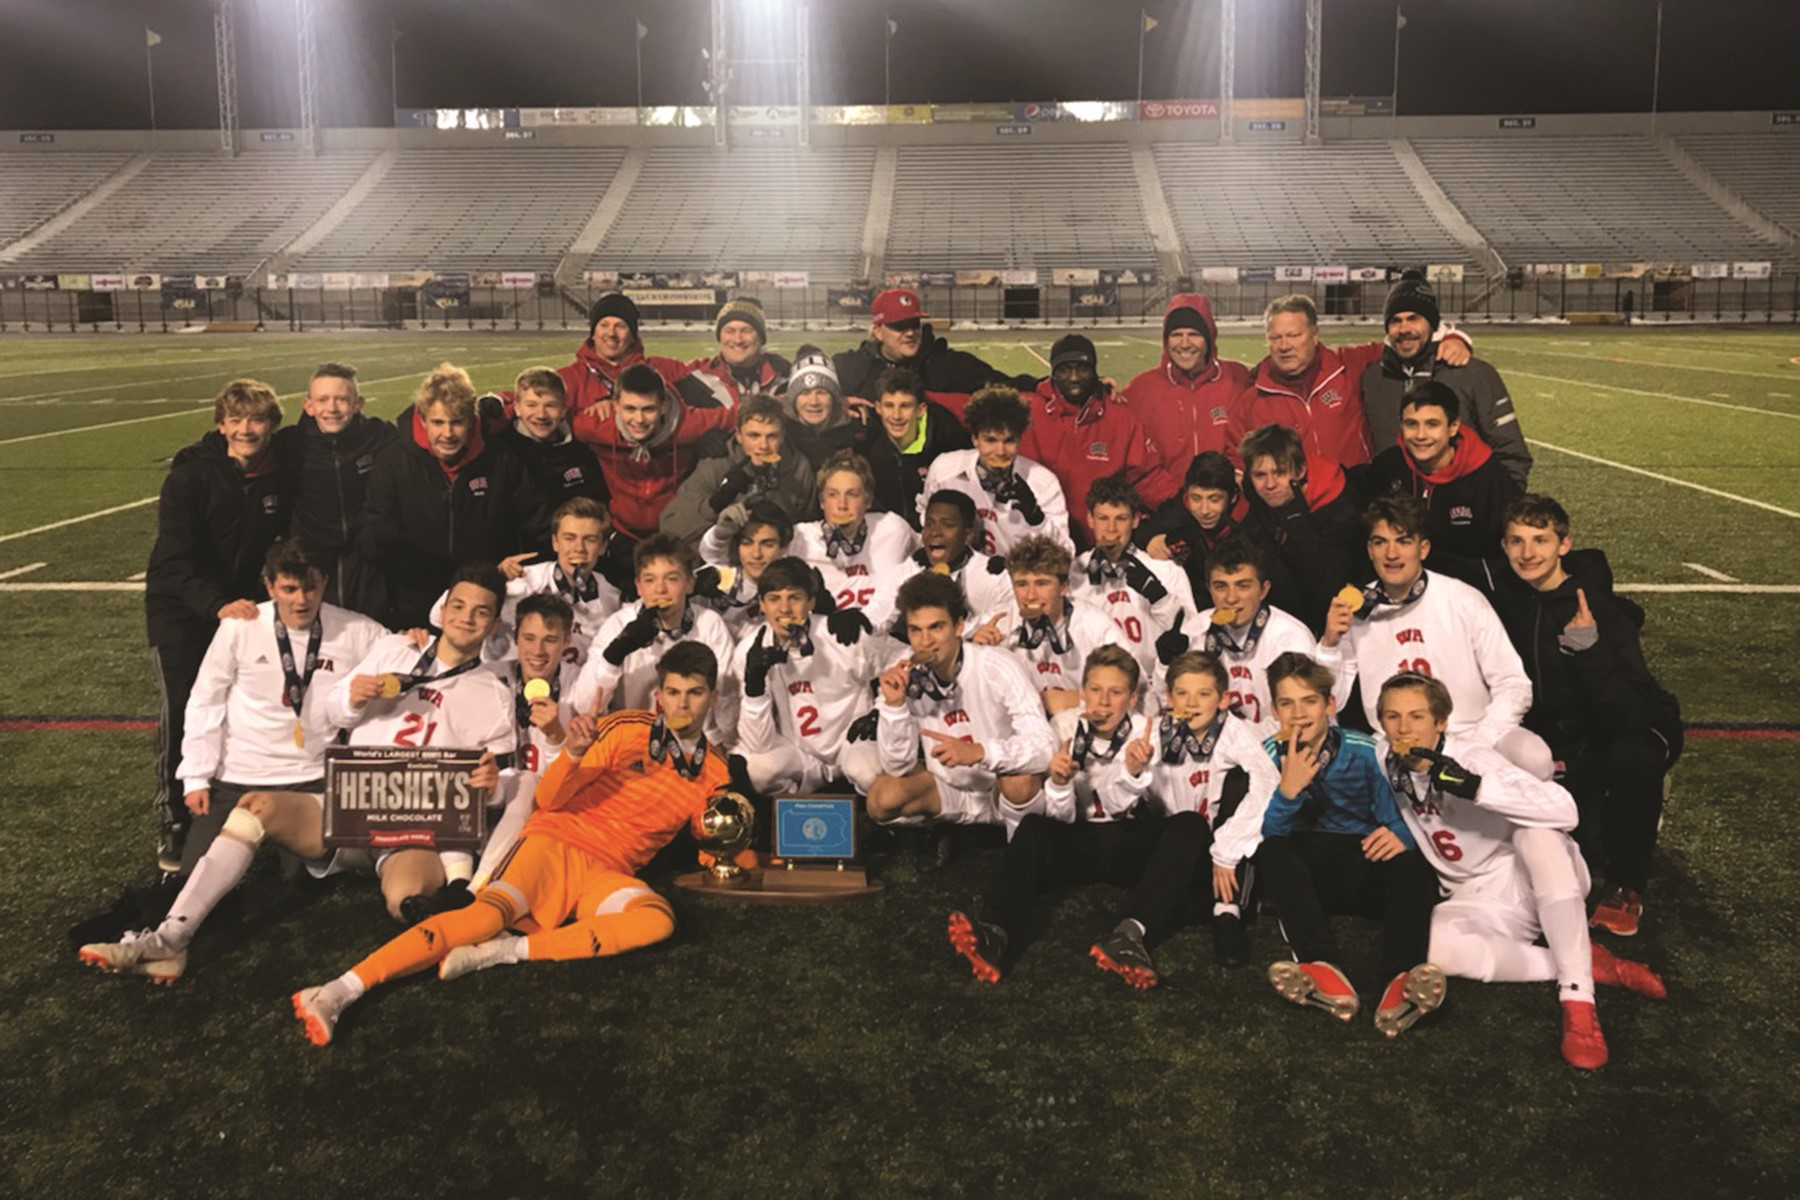 Boys soccer state title